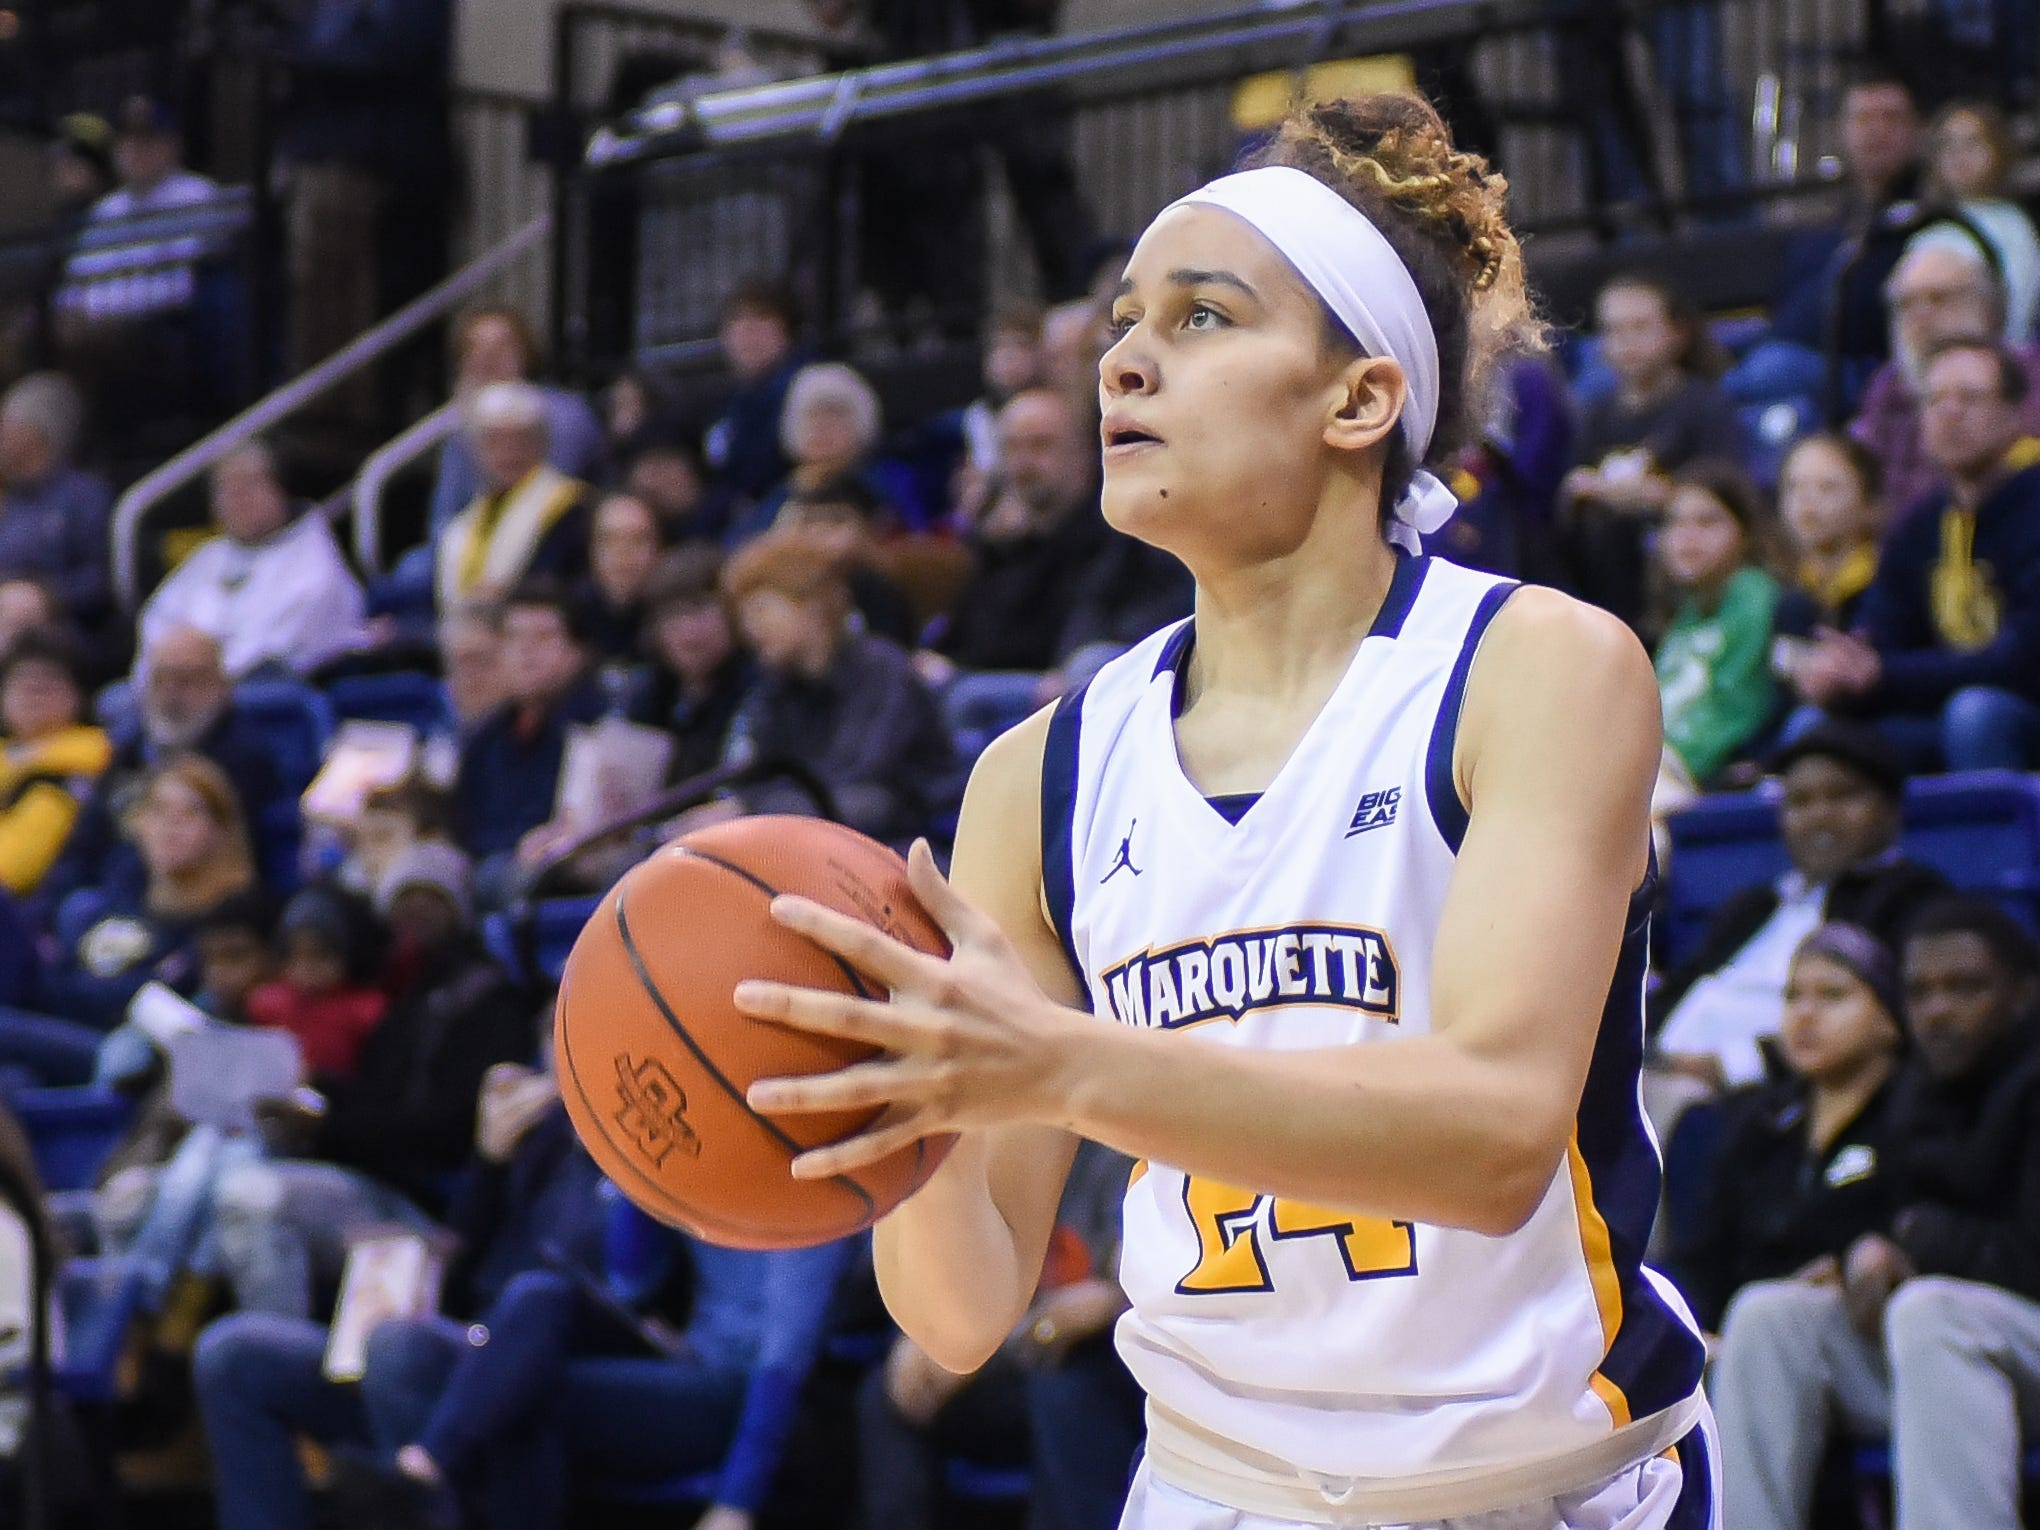 Marquette guard Selena Lott (shown in an earlier game)  lead the Golden Eagles with 19 points on Sunday